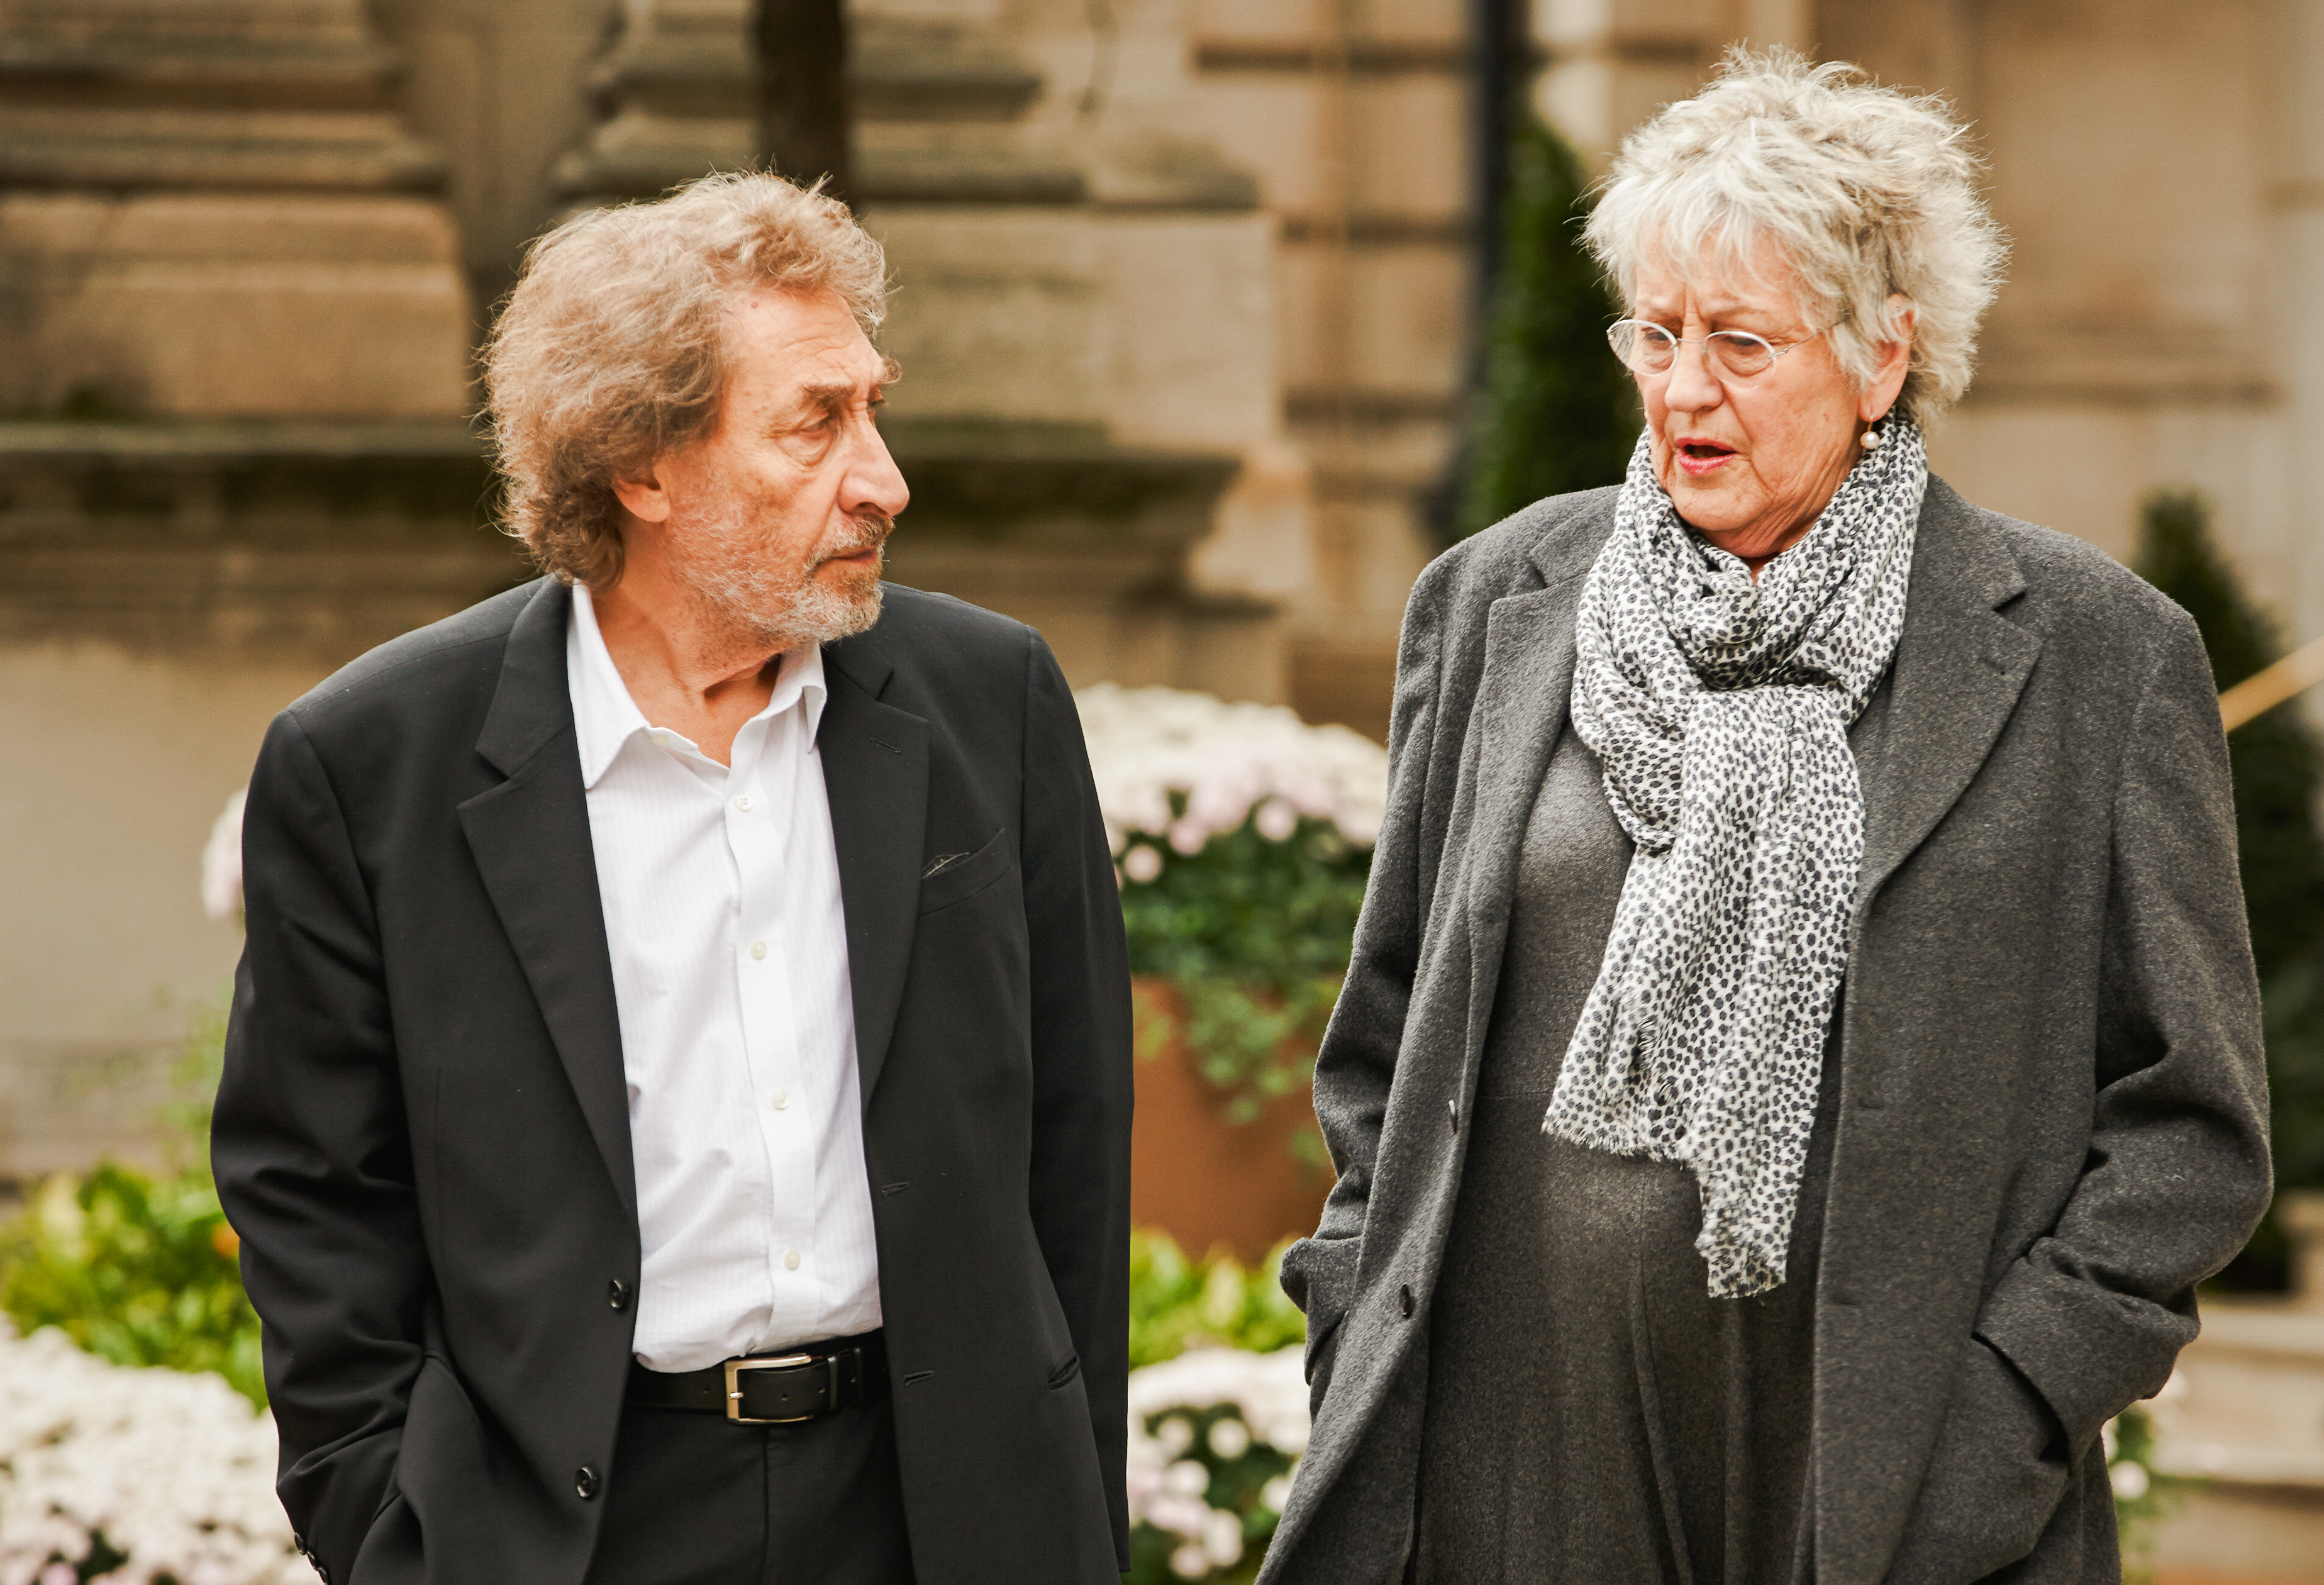 Howard Jacobson meets Germaine Greer